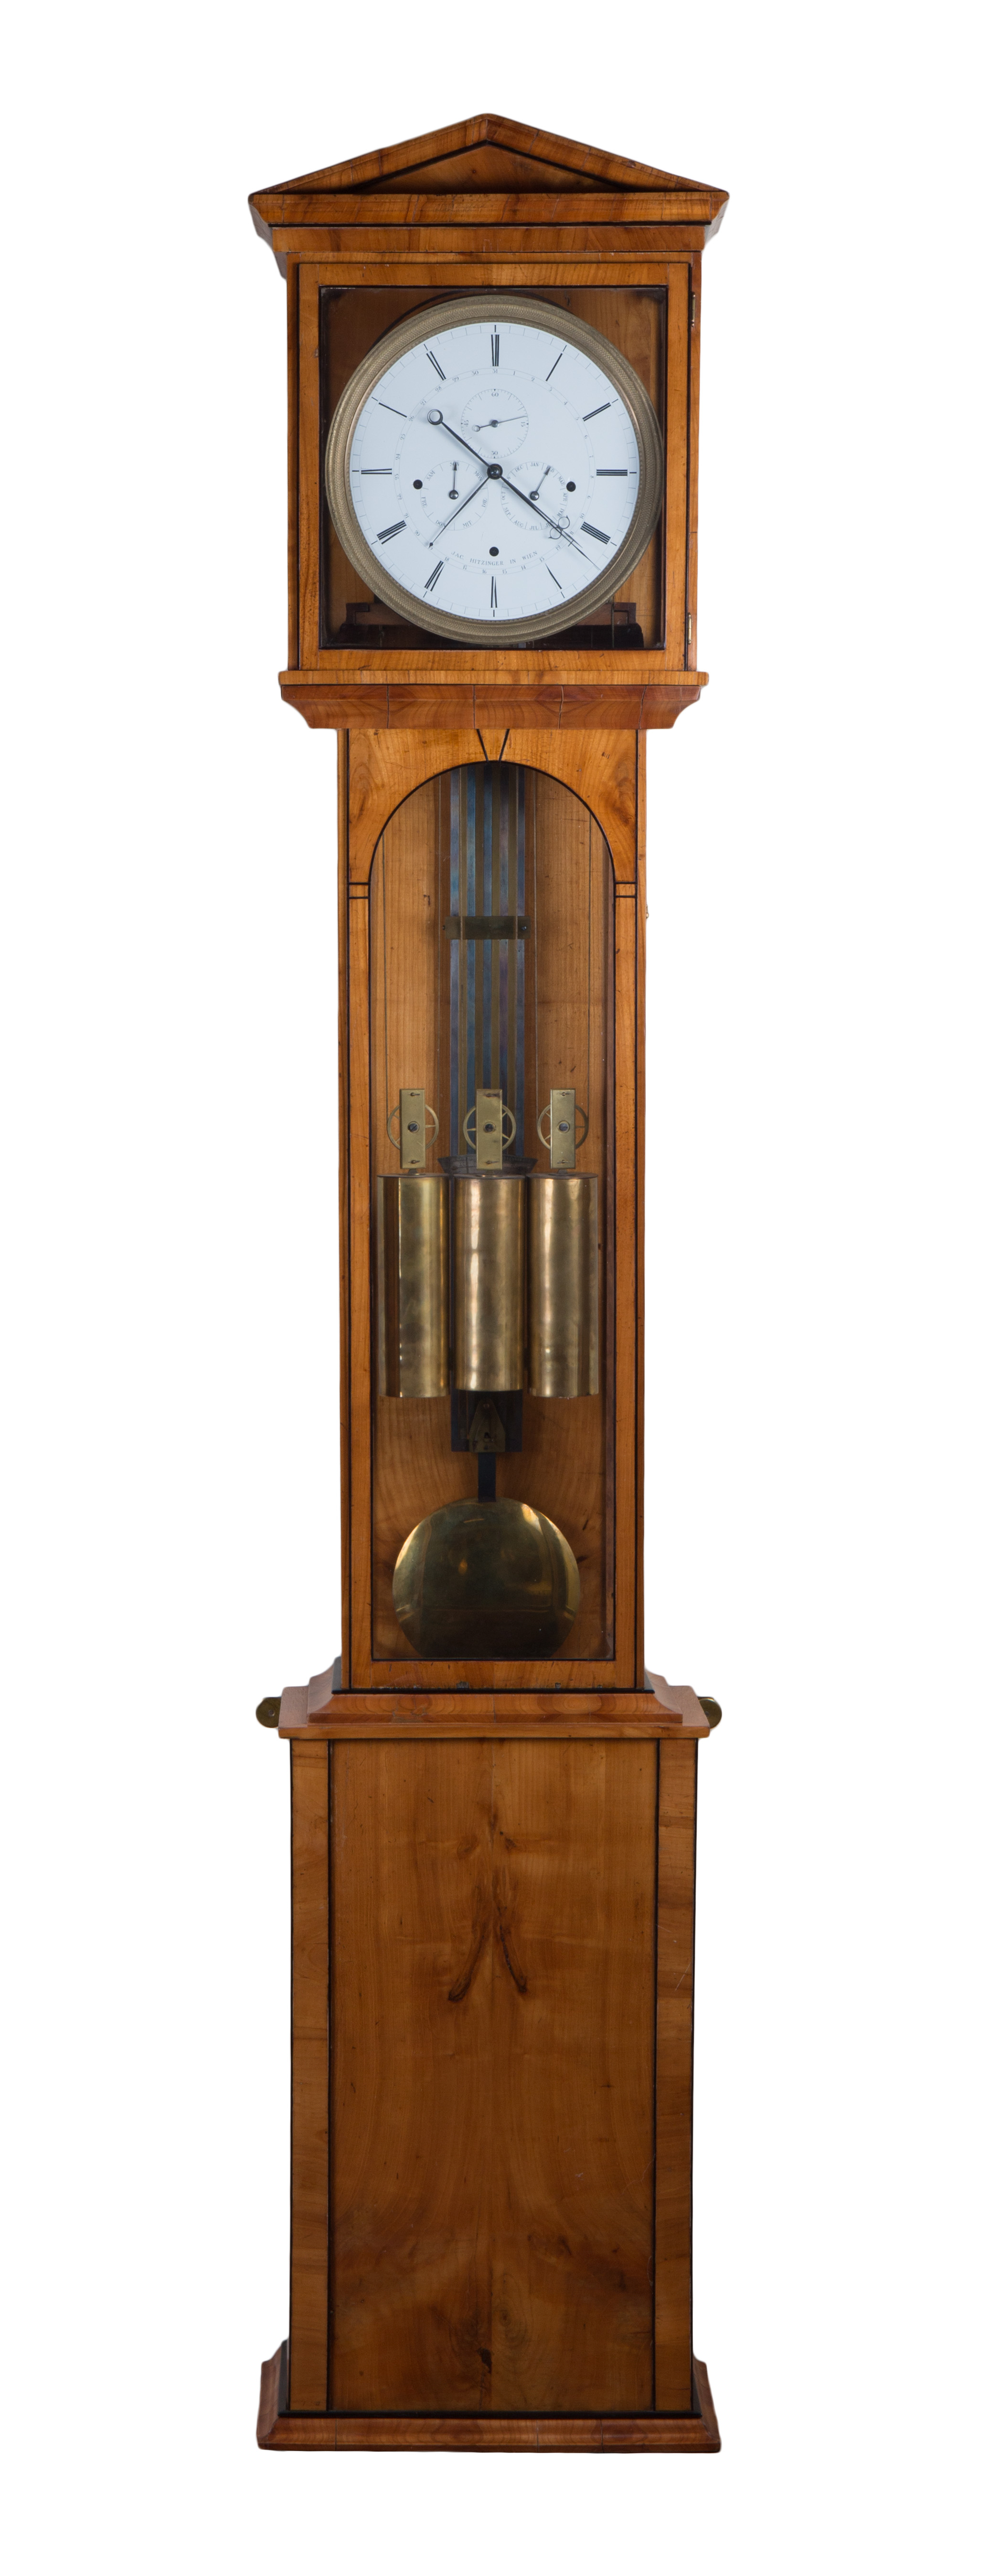 Longcase clock by Jacob Hitzinger with 6 months duration, c. 1830.